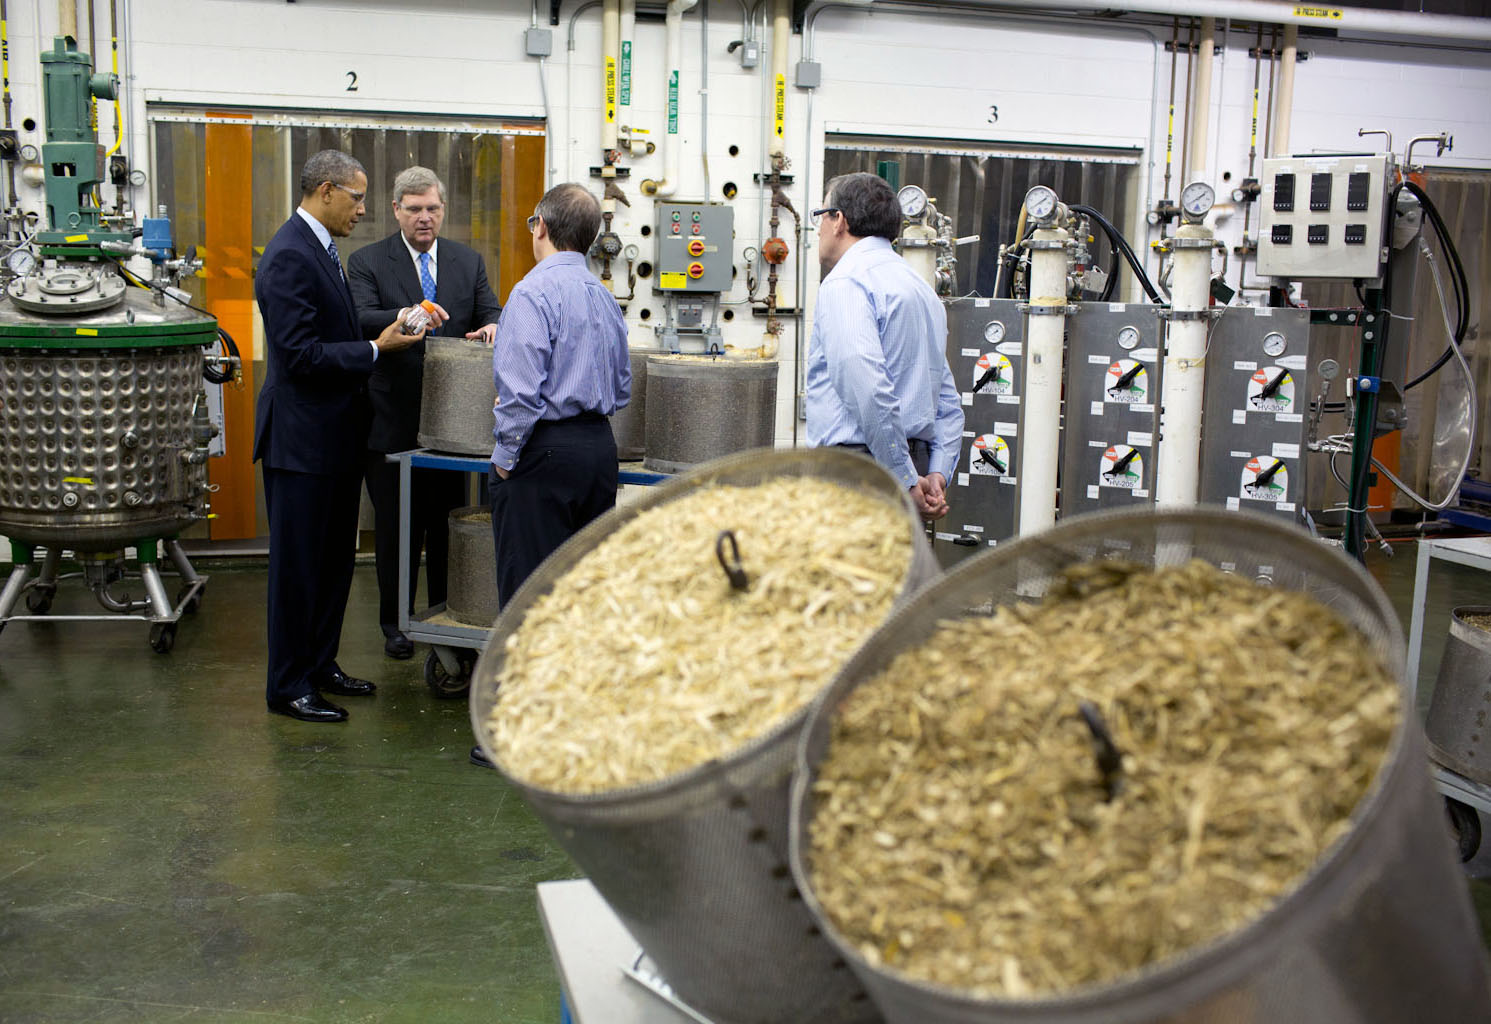 President Barack Obama tours Michigan Biotechnology Institute with Agriculture Secretary Tom Vilsack in Lansing, Mich